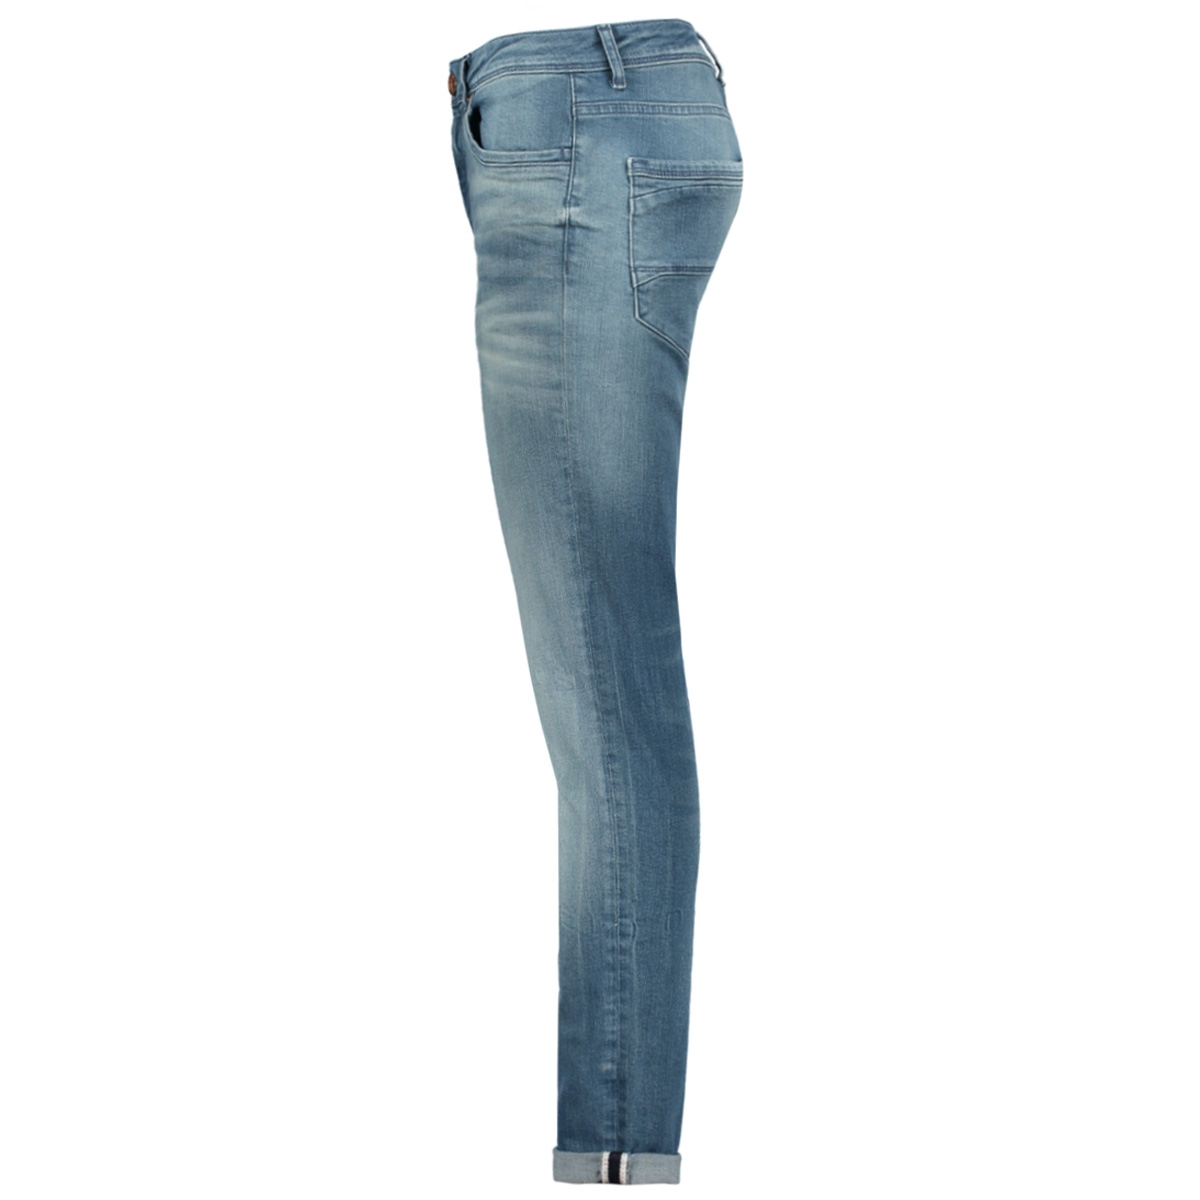 blast den 7842880 cars jeans lion blue